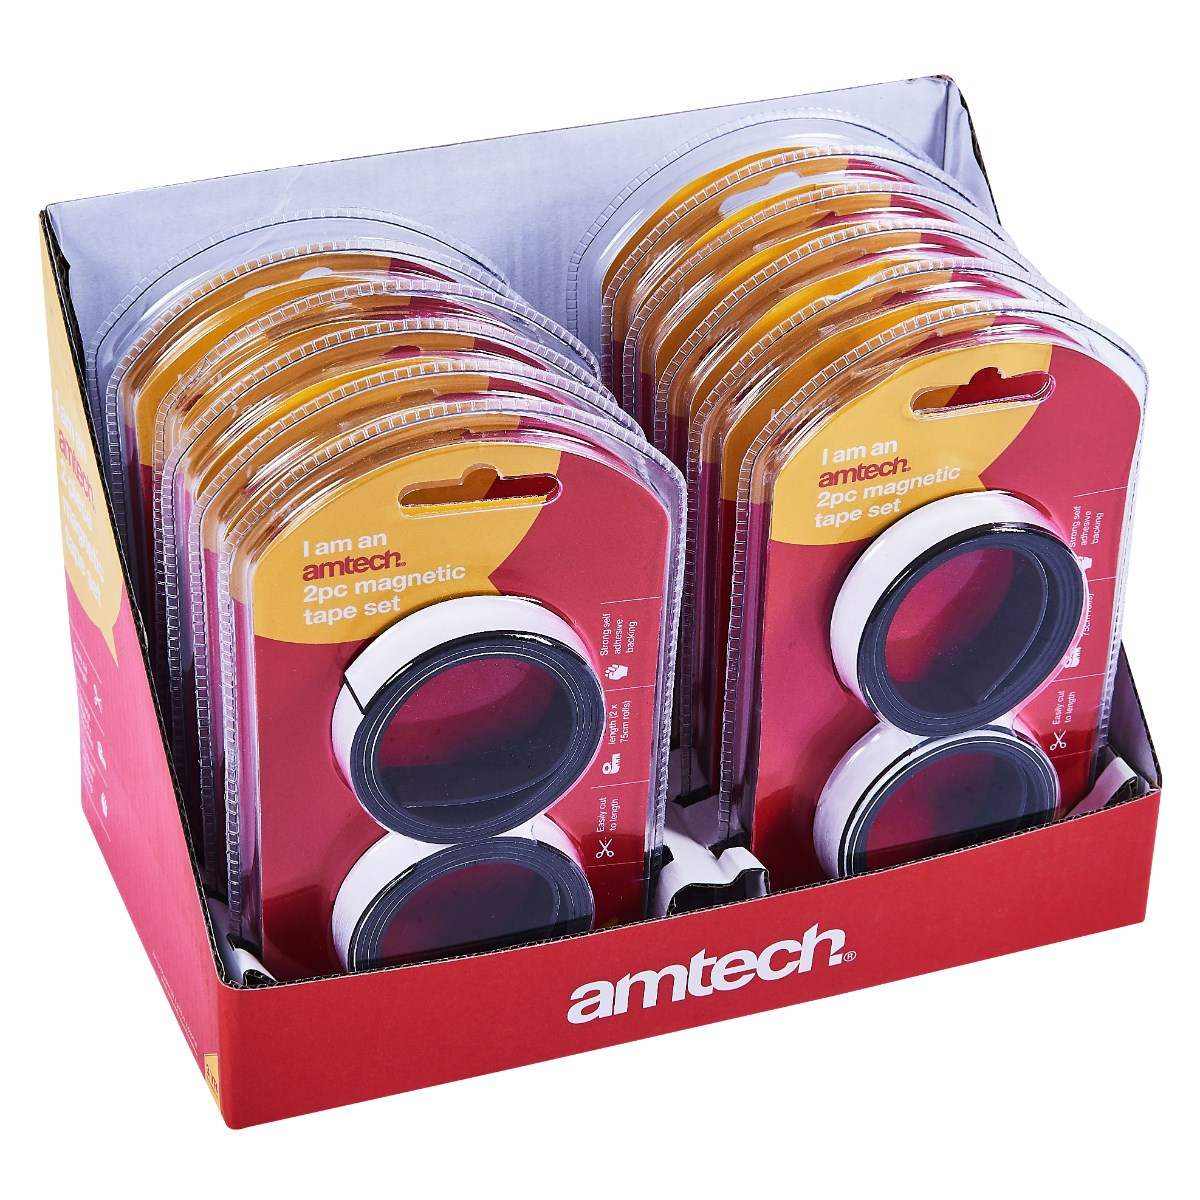 2pc magnetic tape - Amtech